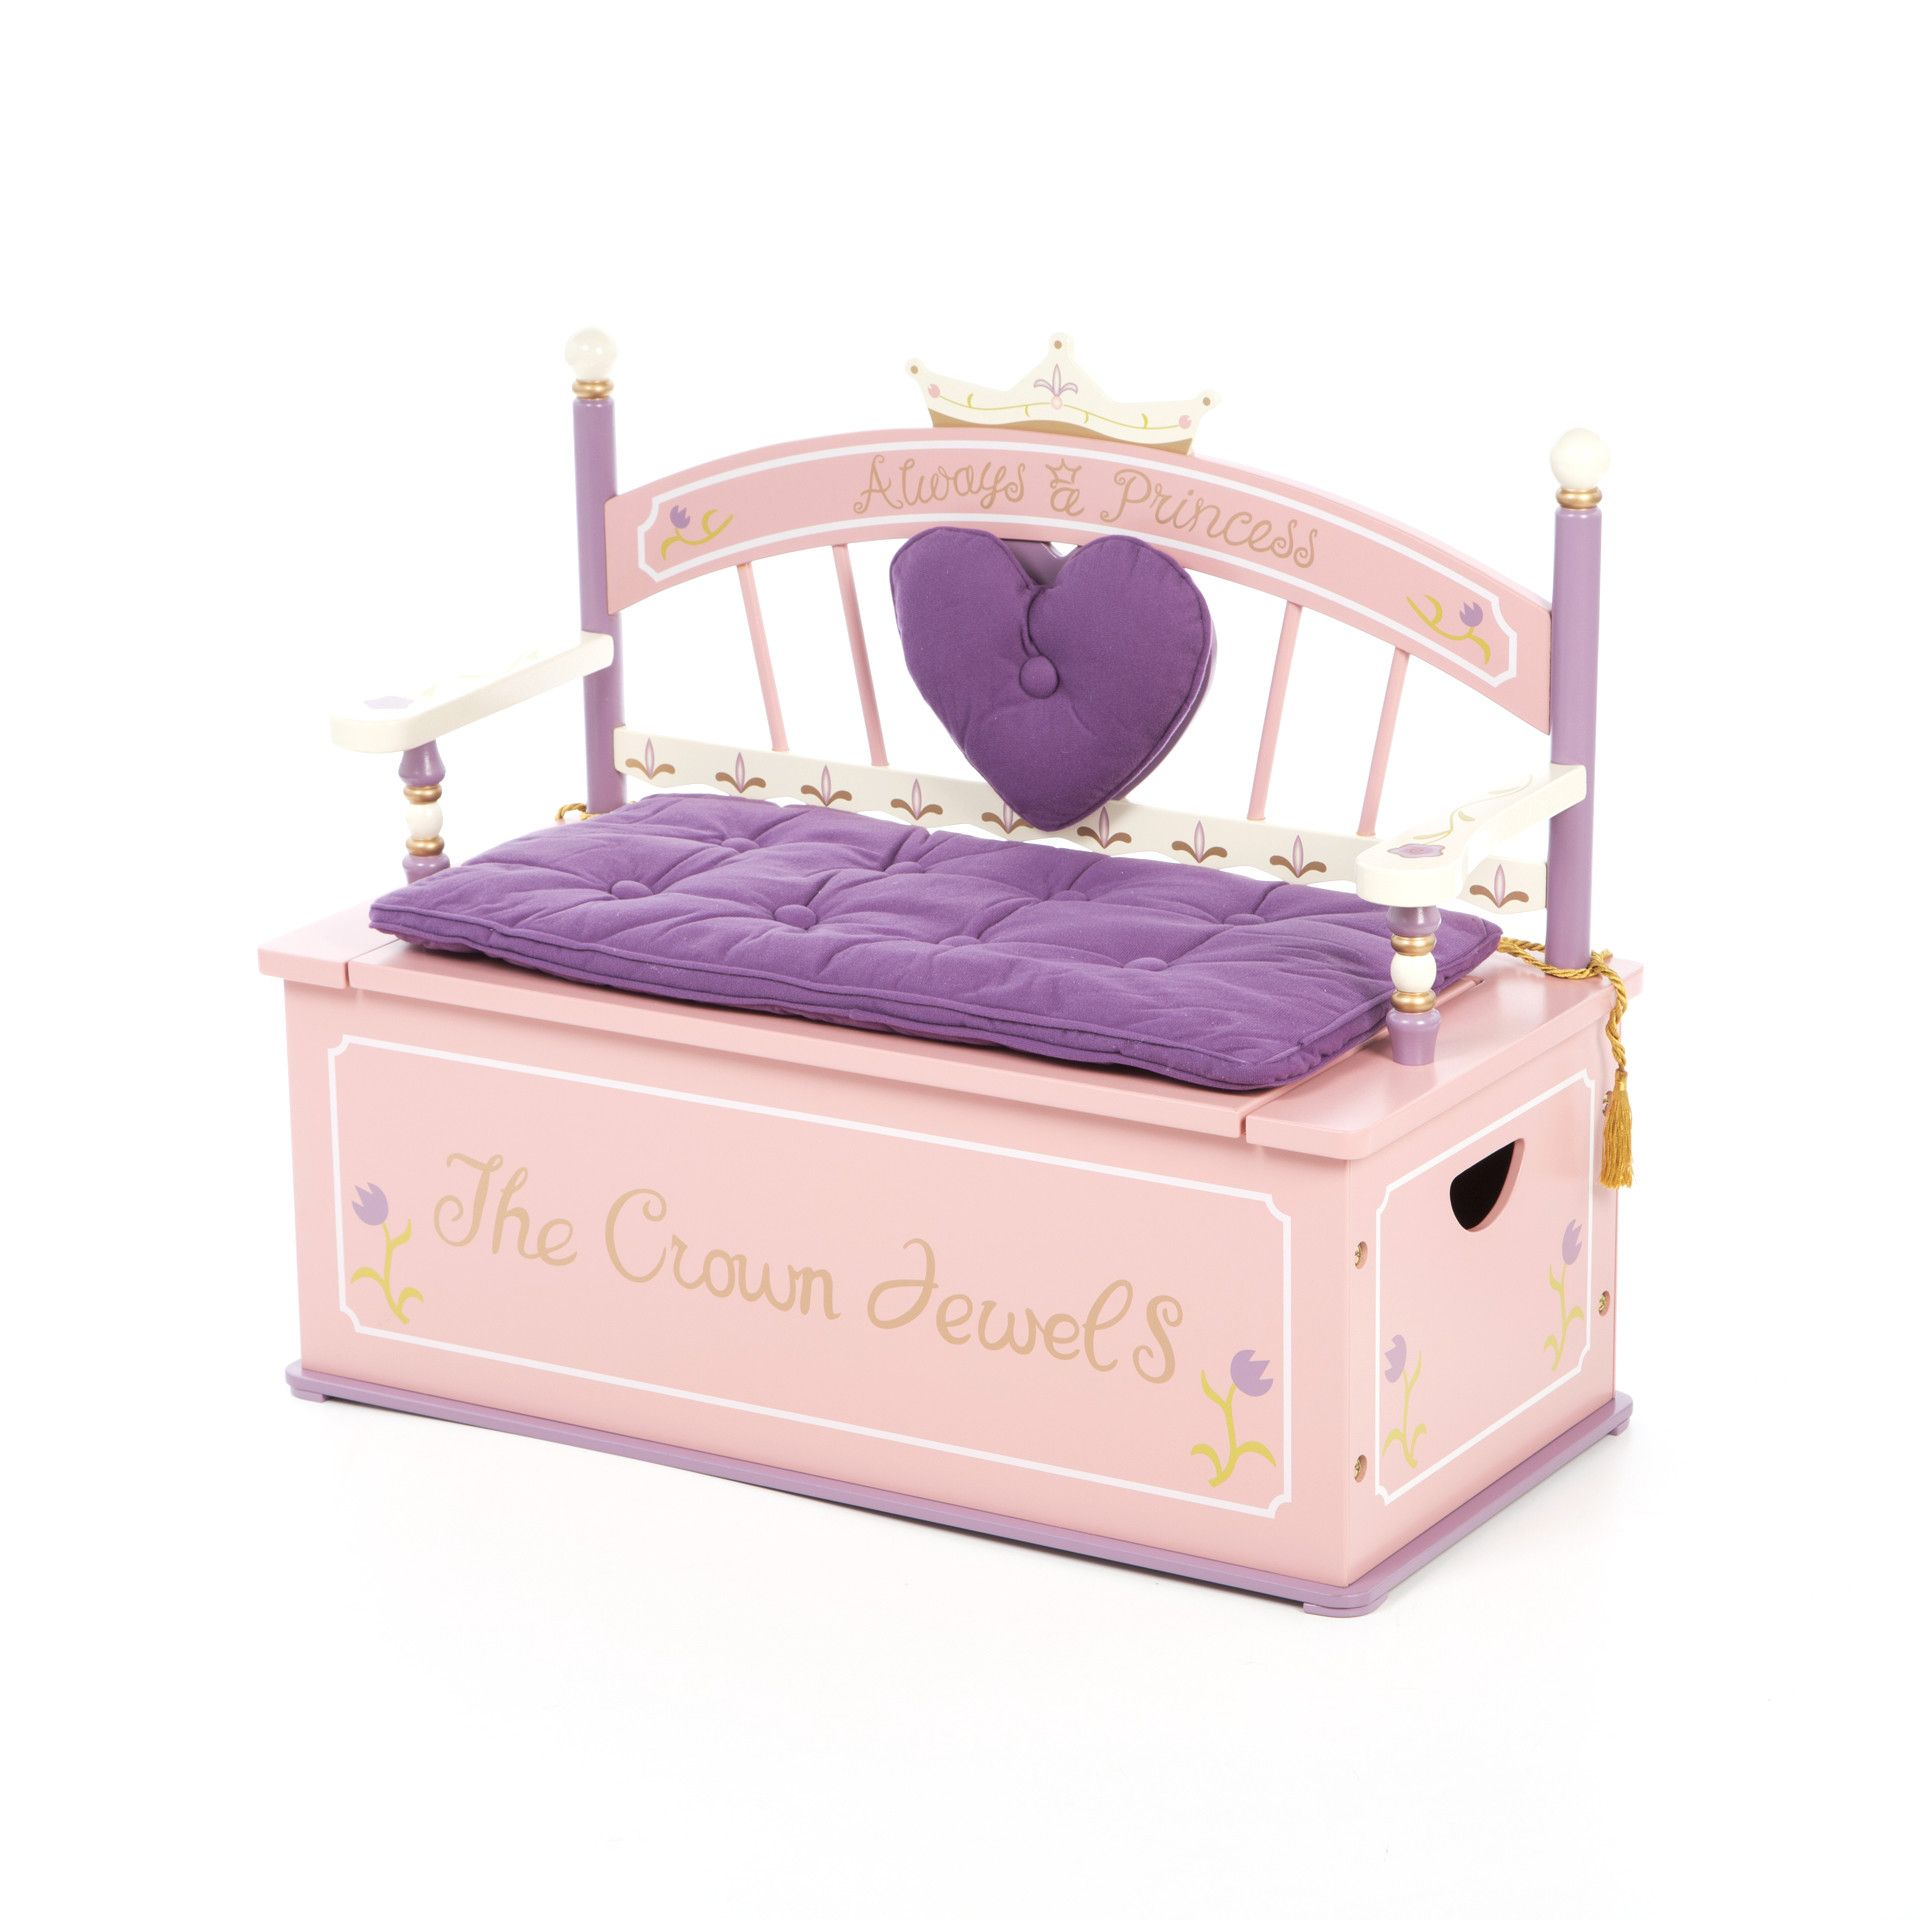 7 Little Princess Bedroom Theme Ideas Kids Furniture Kids Rocking Chair Princess Bedroom